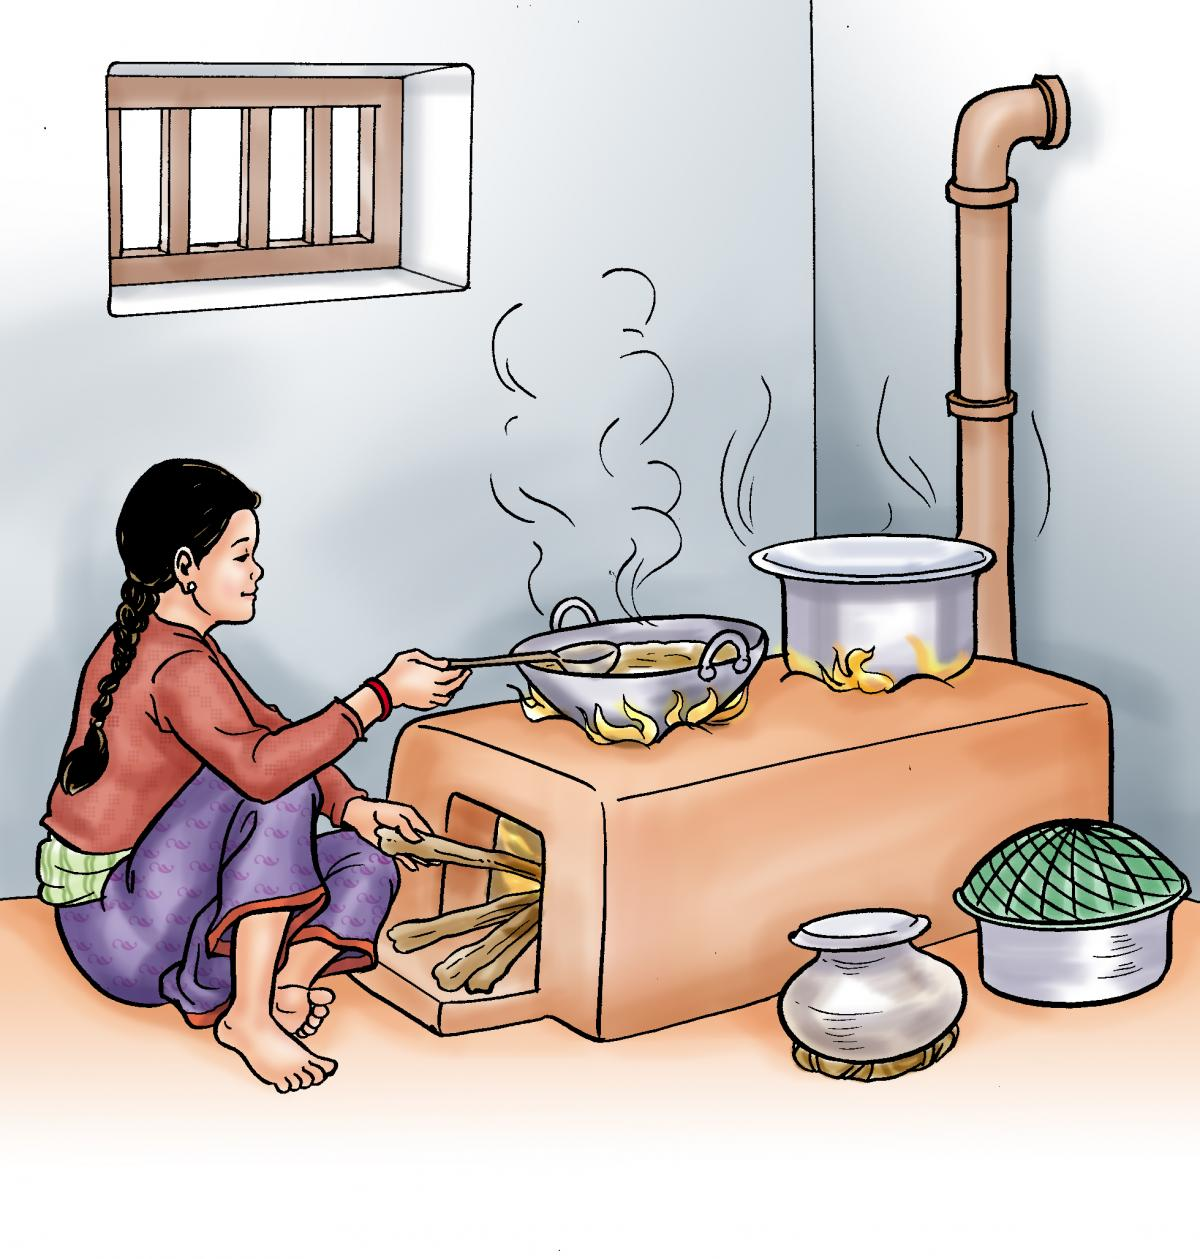 Food practices - Woman cooking a meal on a clay stove - 00 - Nepal